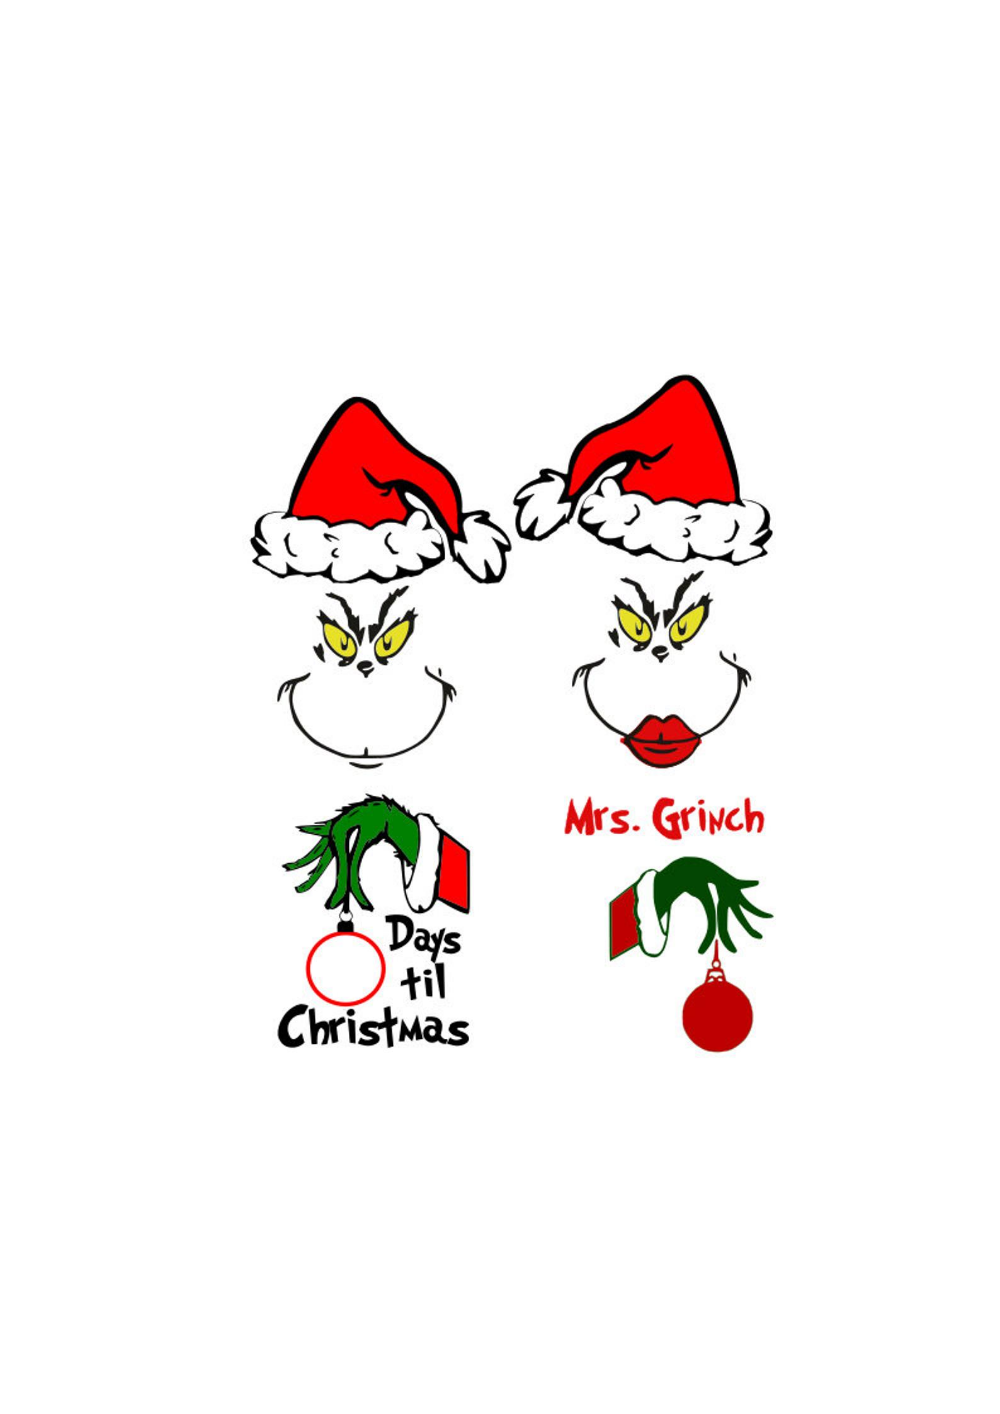 Pin by Michelle Hale on Christmas door SVG Grinch stuff